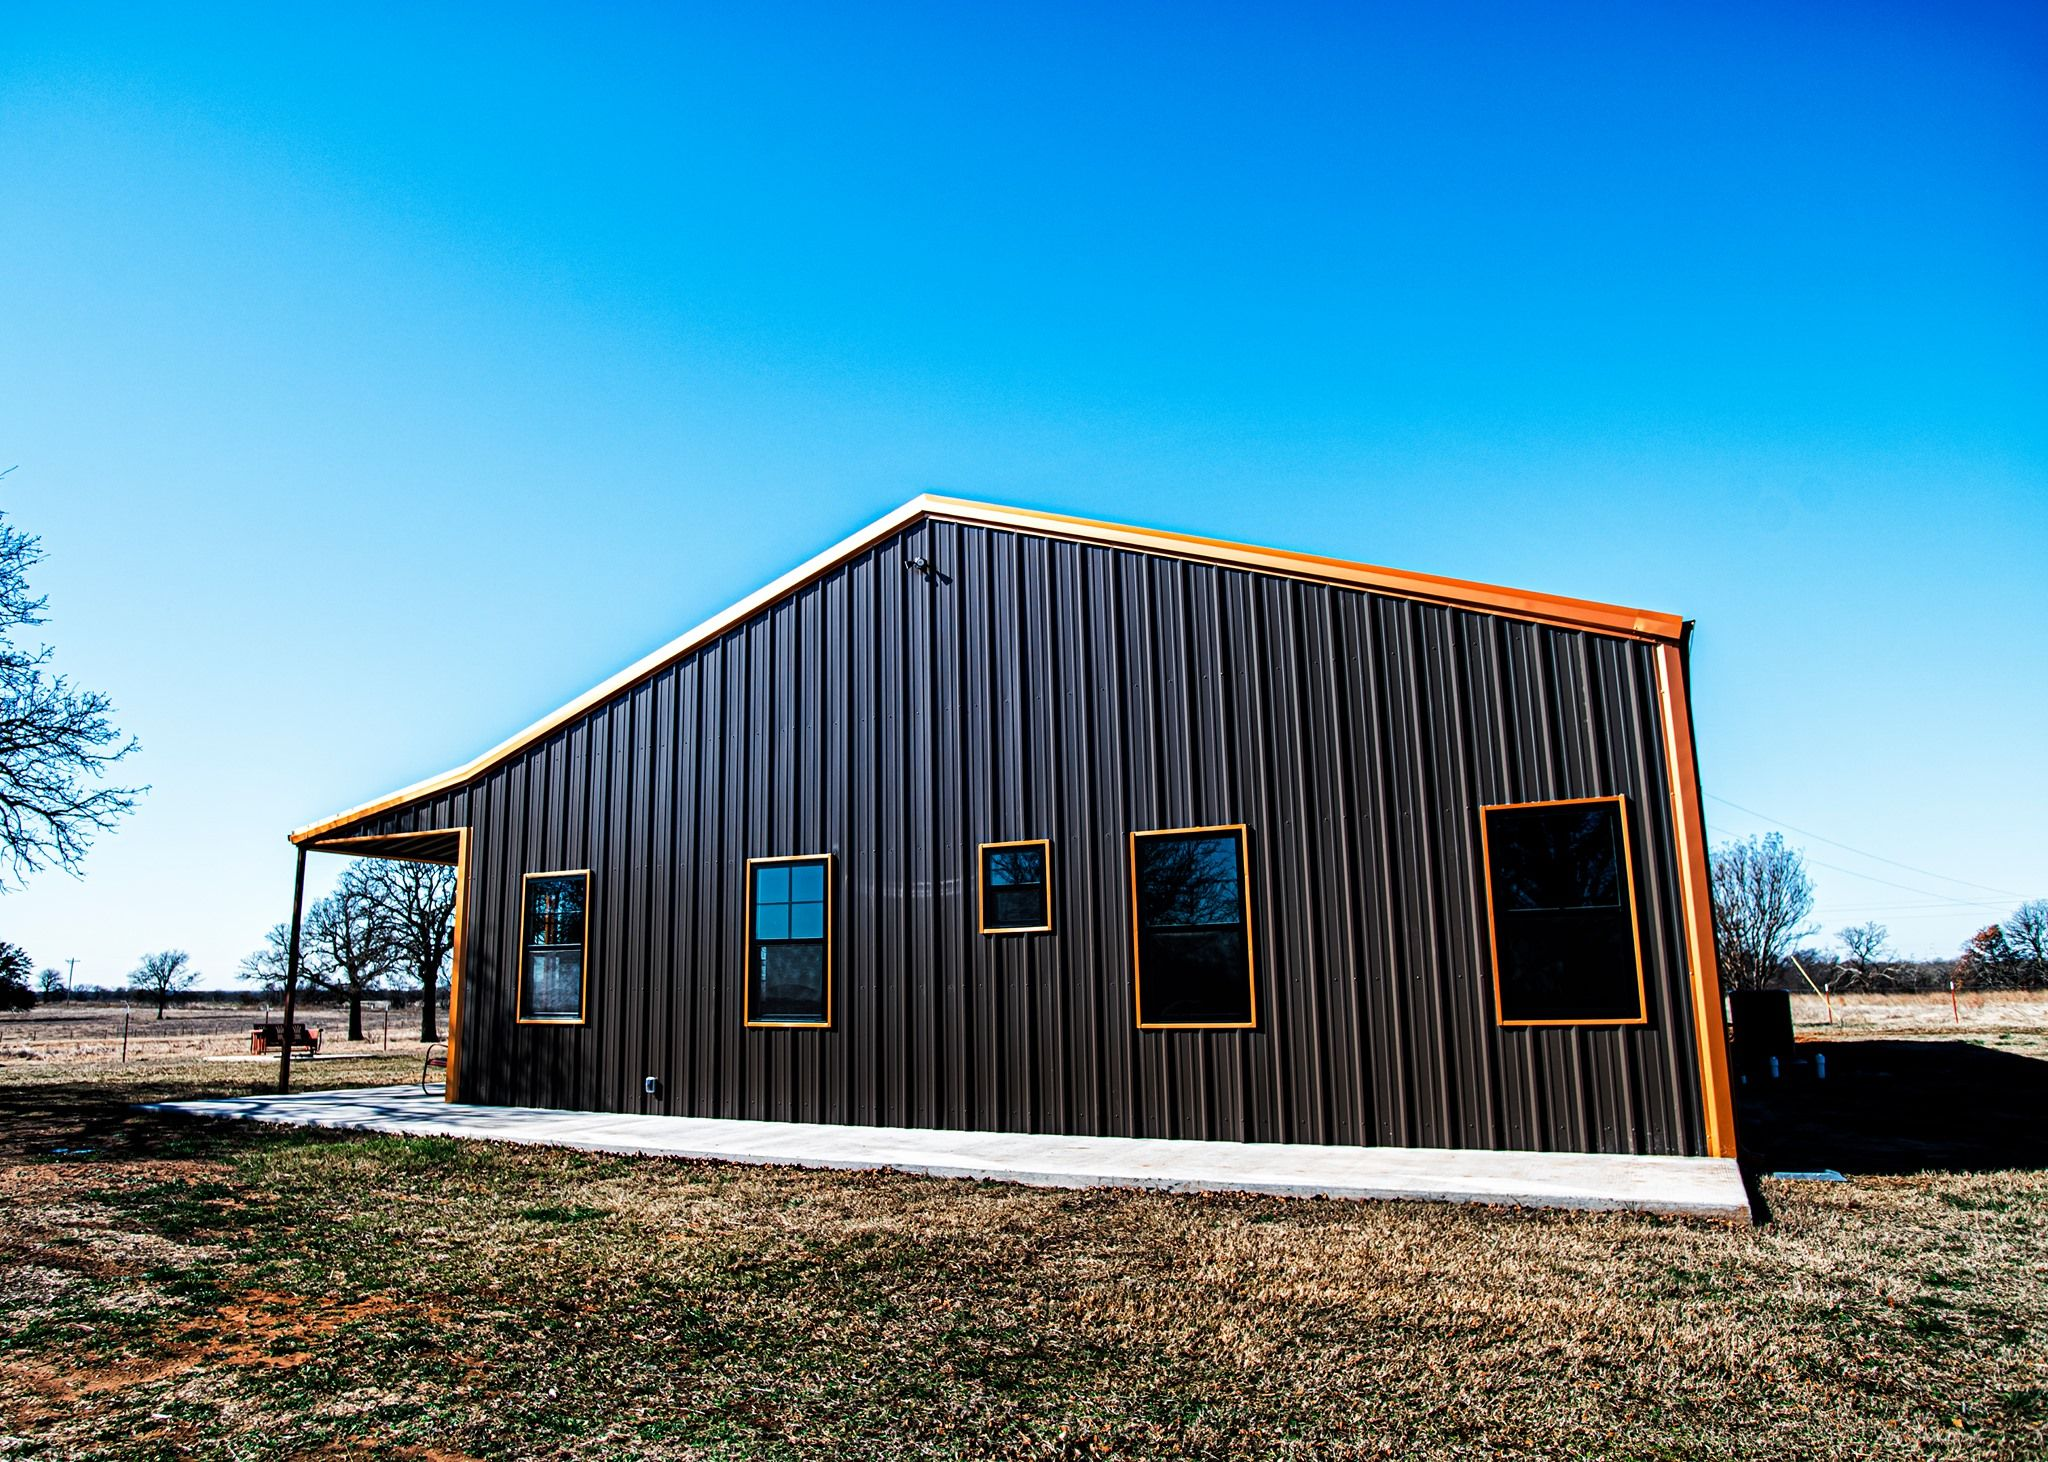 Amazing Oklahoma Barndominium Pictures Builder Info Cost And More In 2020 Barndominium Pictures Barndominium Metal Building House Plans